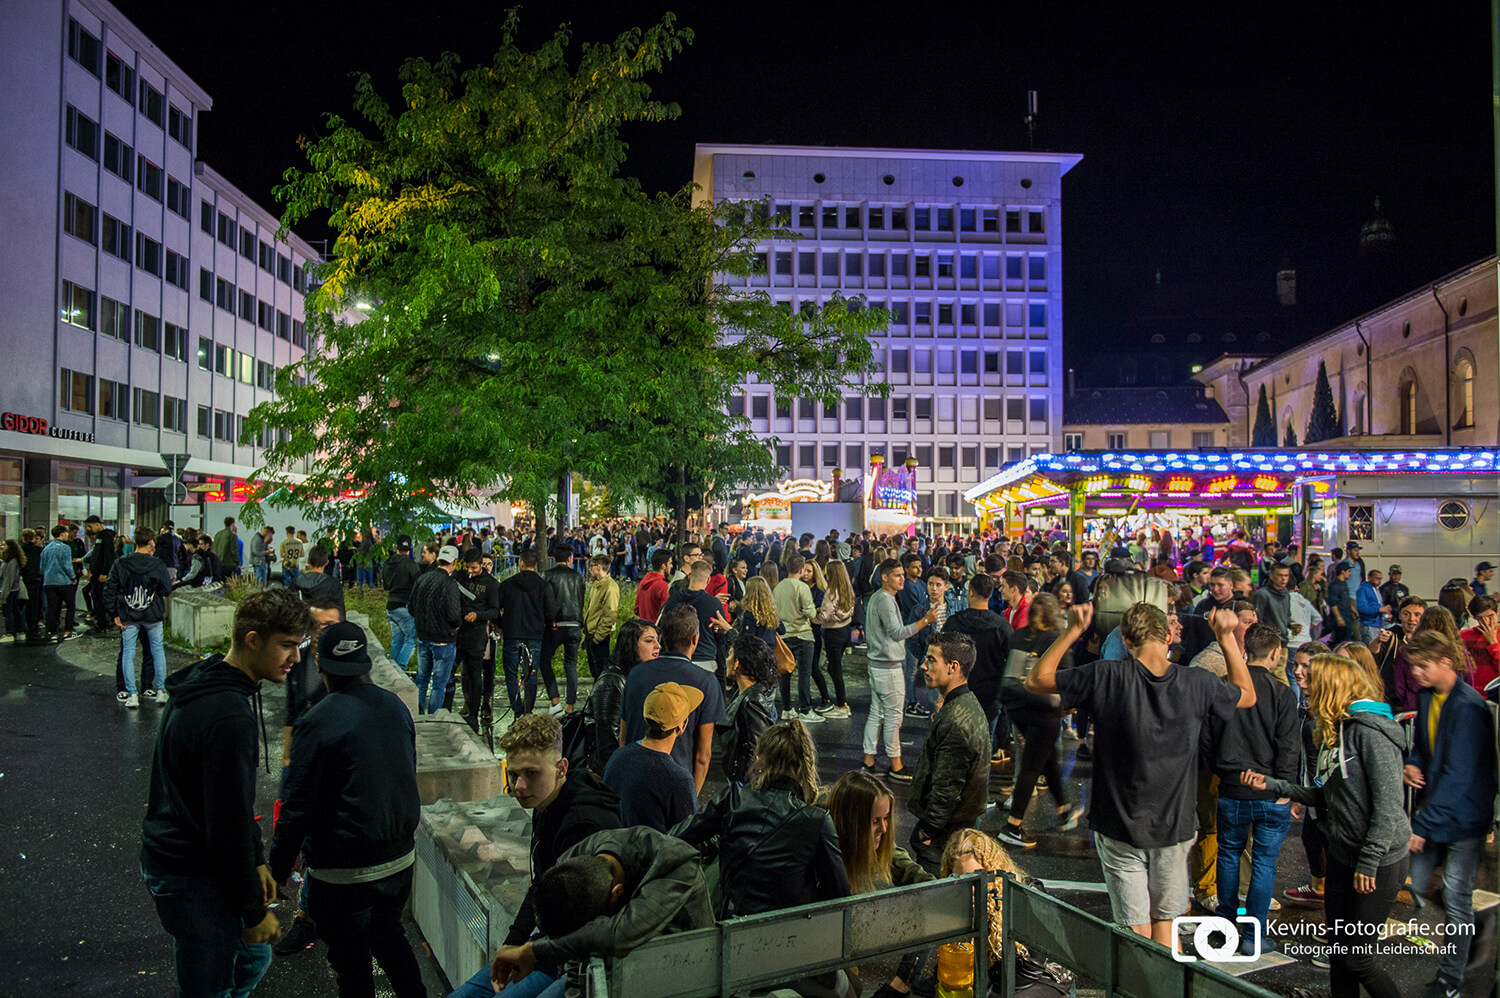 Theaterplatz, Churer Fest 2017